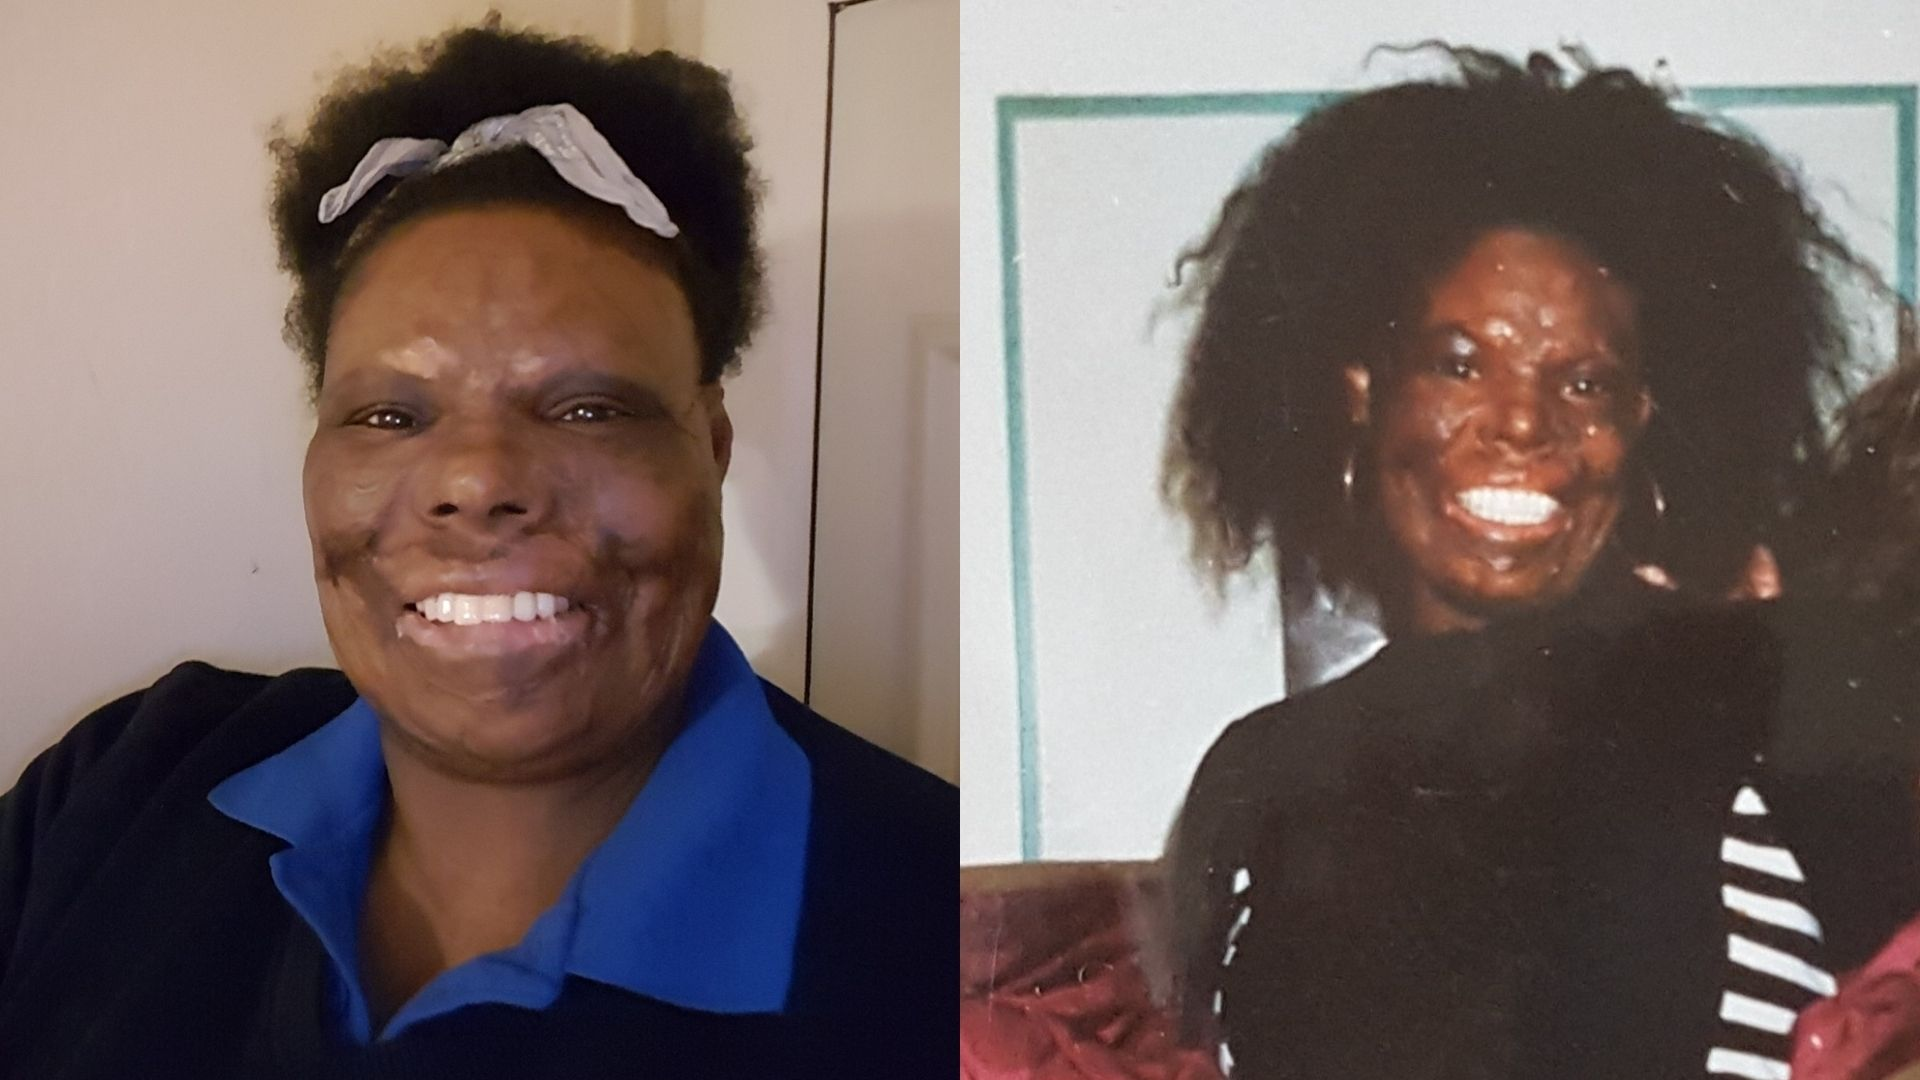 Left: Christine, a woman in her 40s/50s, wearing a black jumper and blue shirt. She's smiling at the camera and her hair is pulled up in a scrunchie. Right: Christine in her 30s, she is wearing a black top with a black and white lined dress over it. She's smiling at the camera.